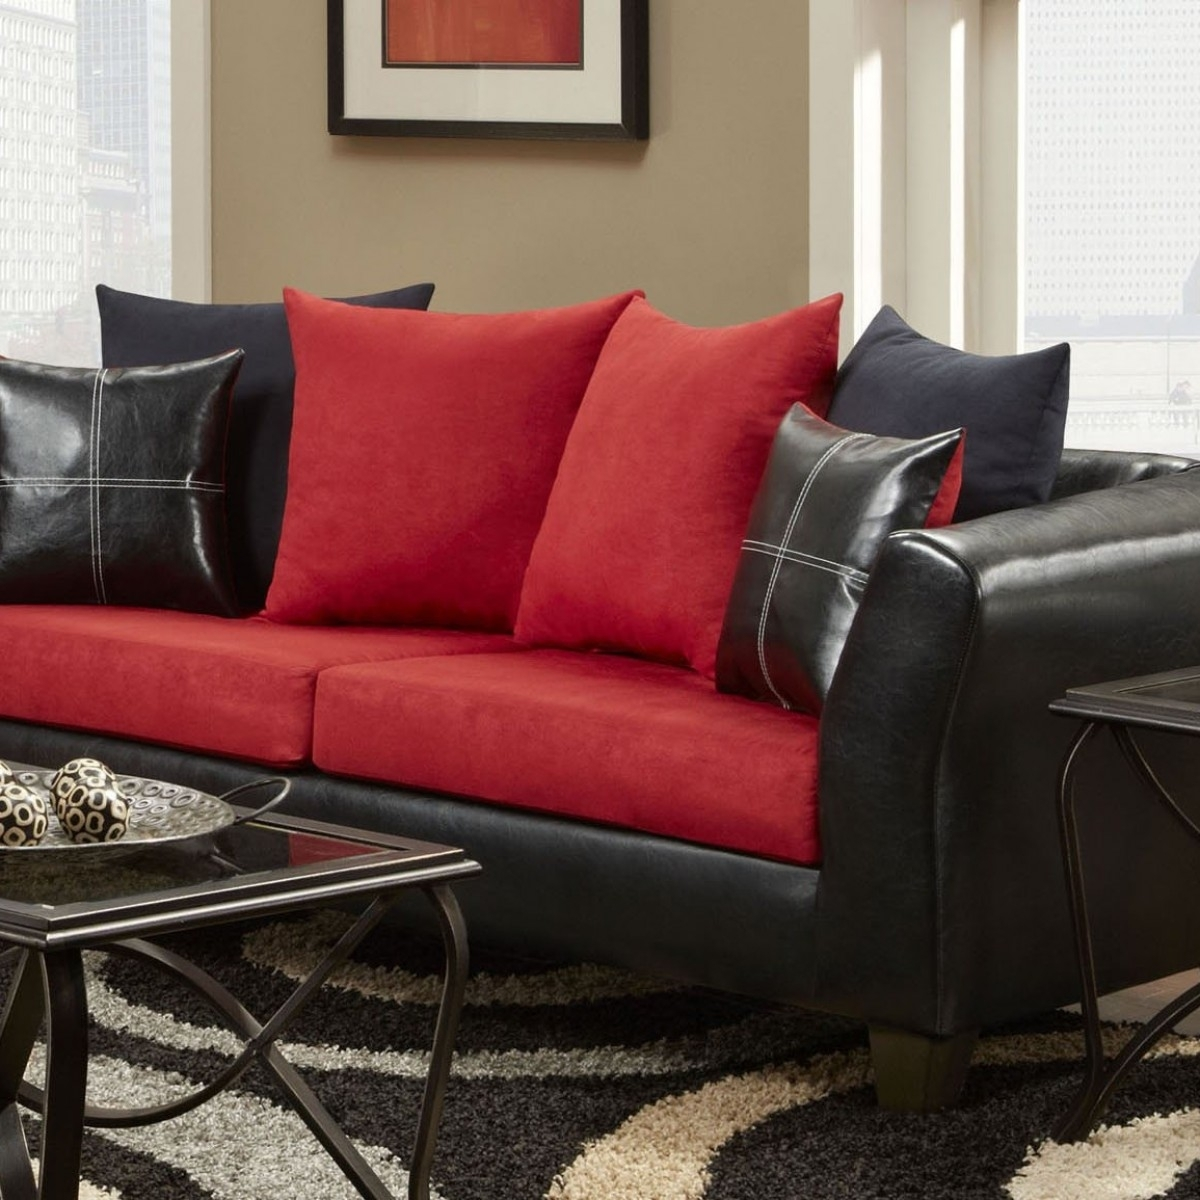 Good Cheap Sectional Sofas Under 200 70 With Additional Cheap Used For Sectional Sofas Under  (Image 9 of 10)